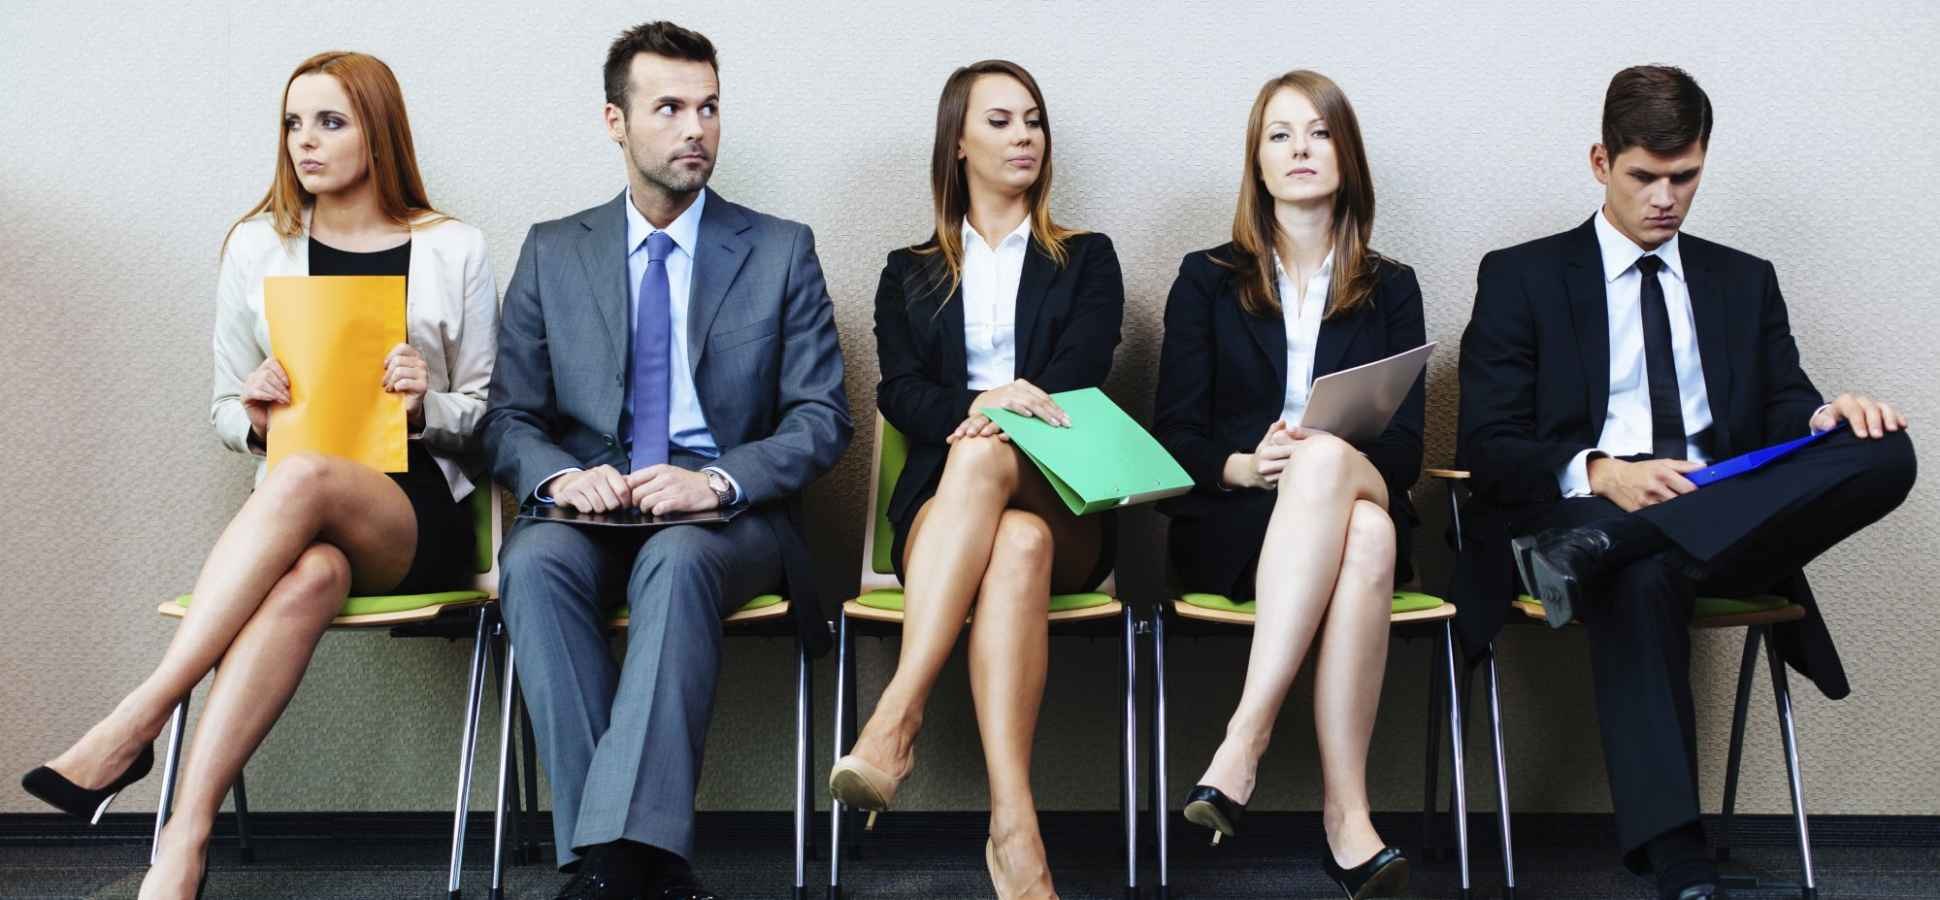 5 Leadership Behaviors You Want in a High-Potential Employee